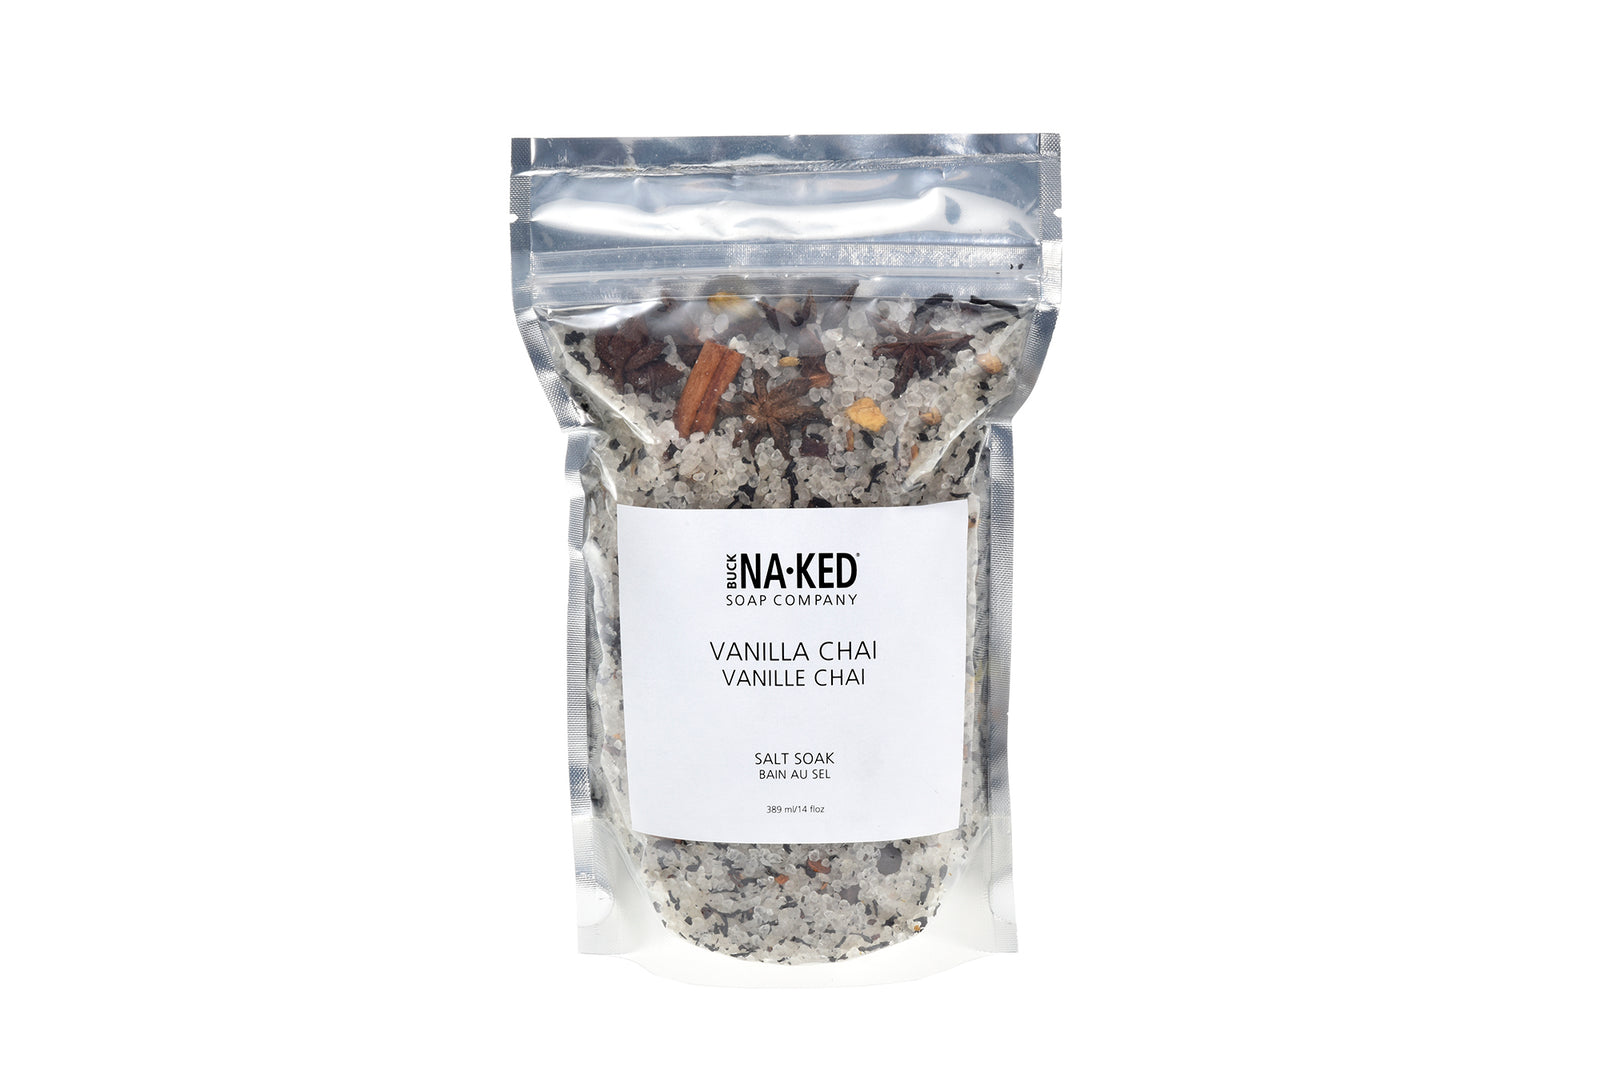 vailla chai dead sea bath salt in a bag